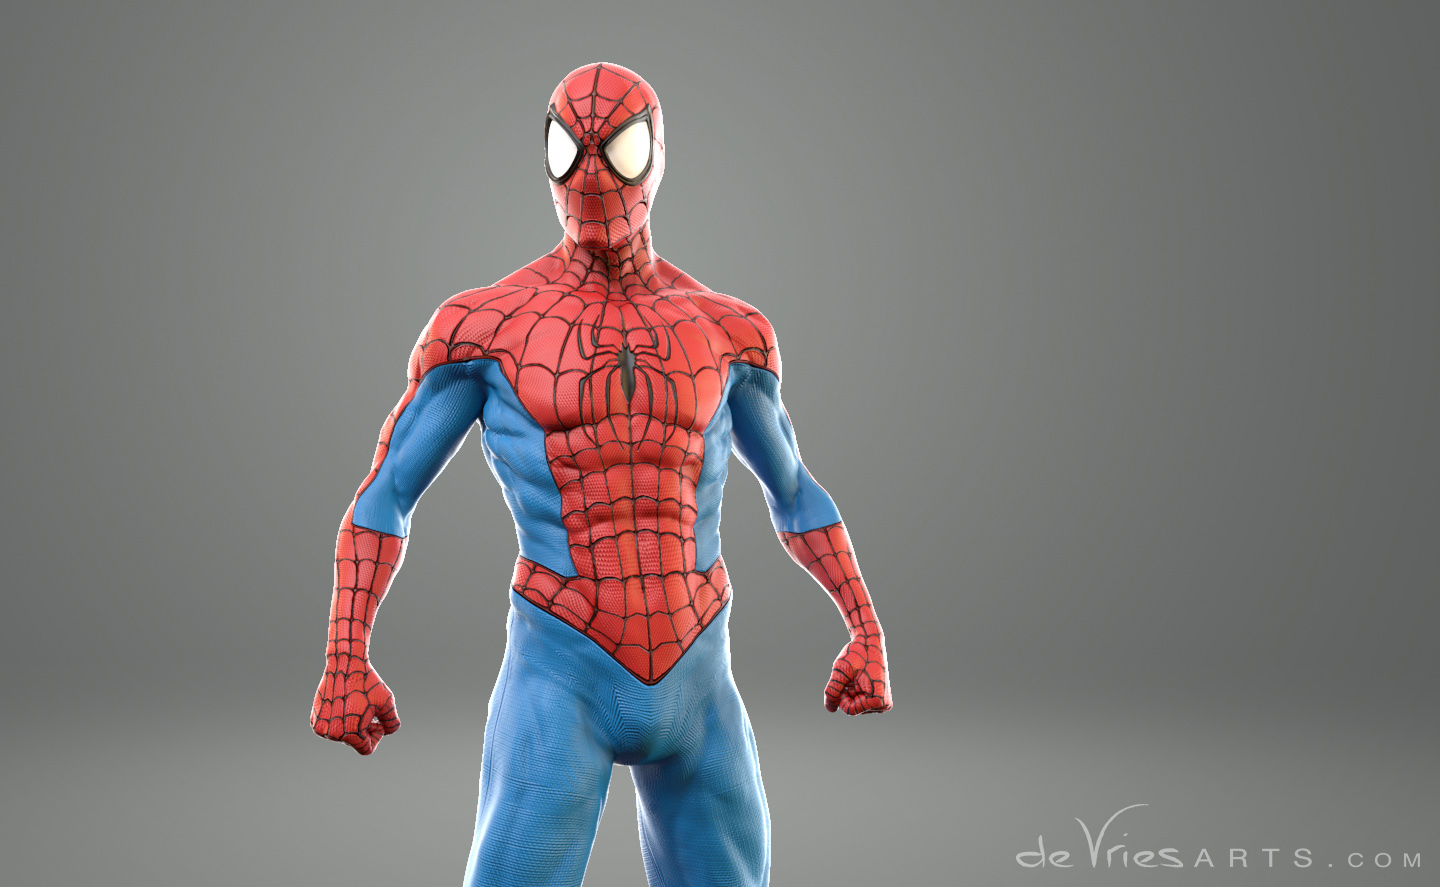 closeColor_spiderman_ThijsDeVries_deVriesArts.jpg